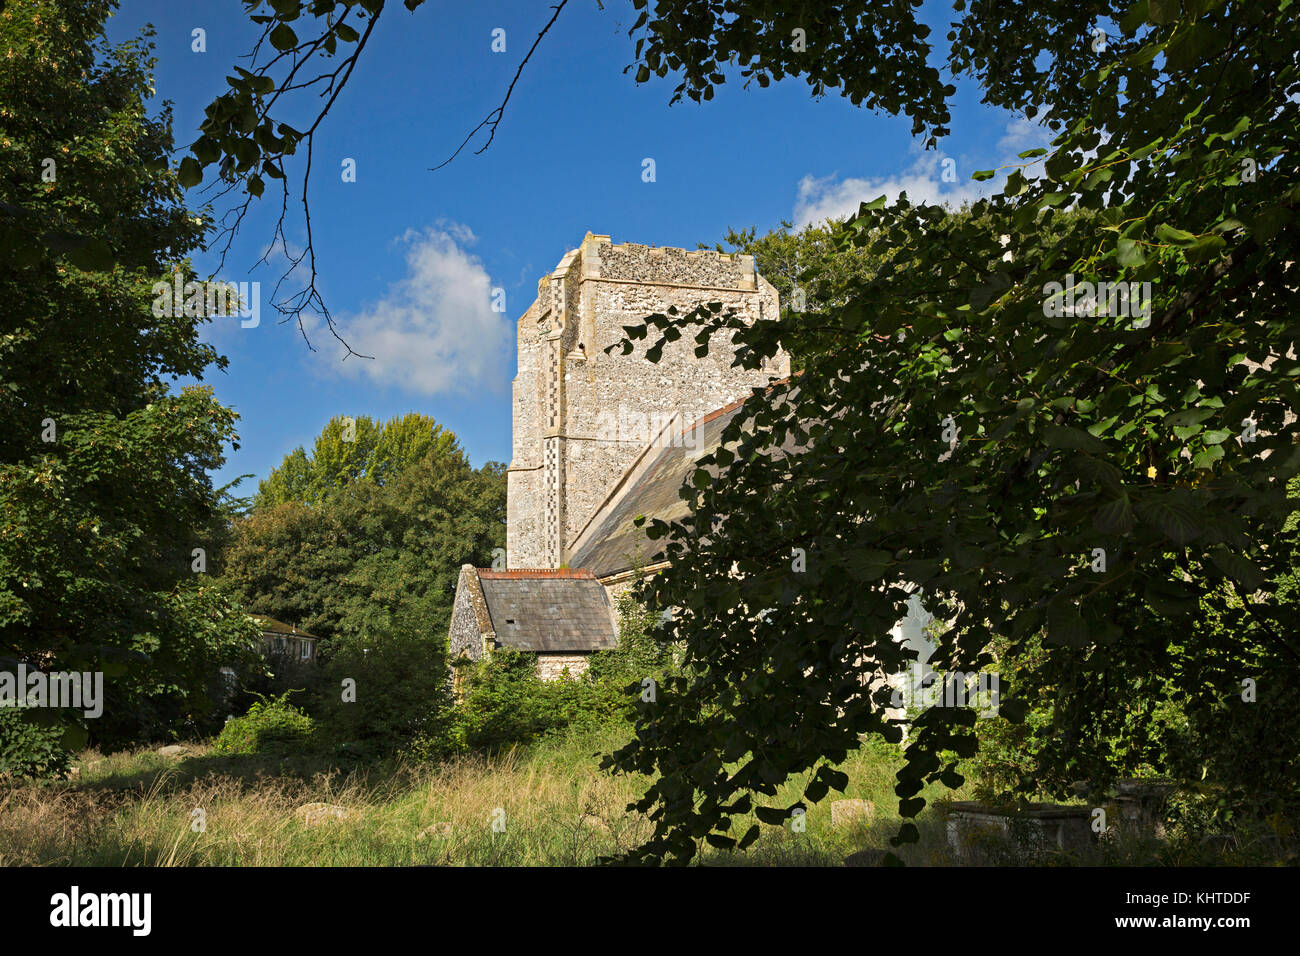 redundant church stock photos u0026 redundant church stock images alamy